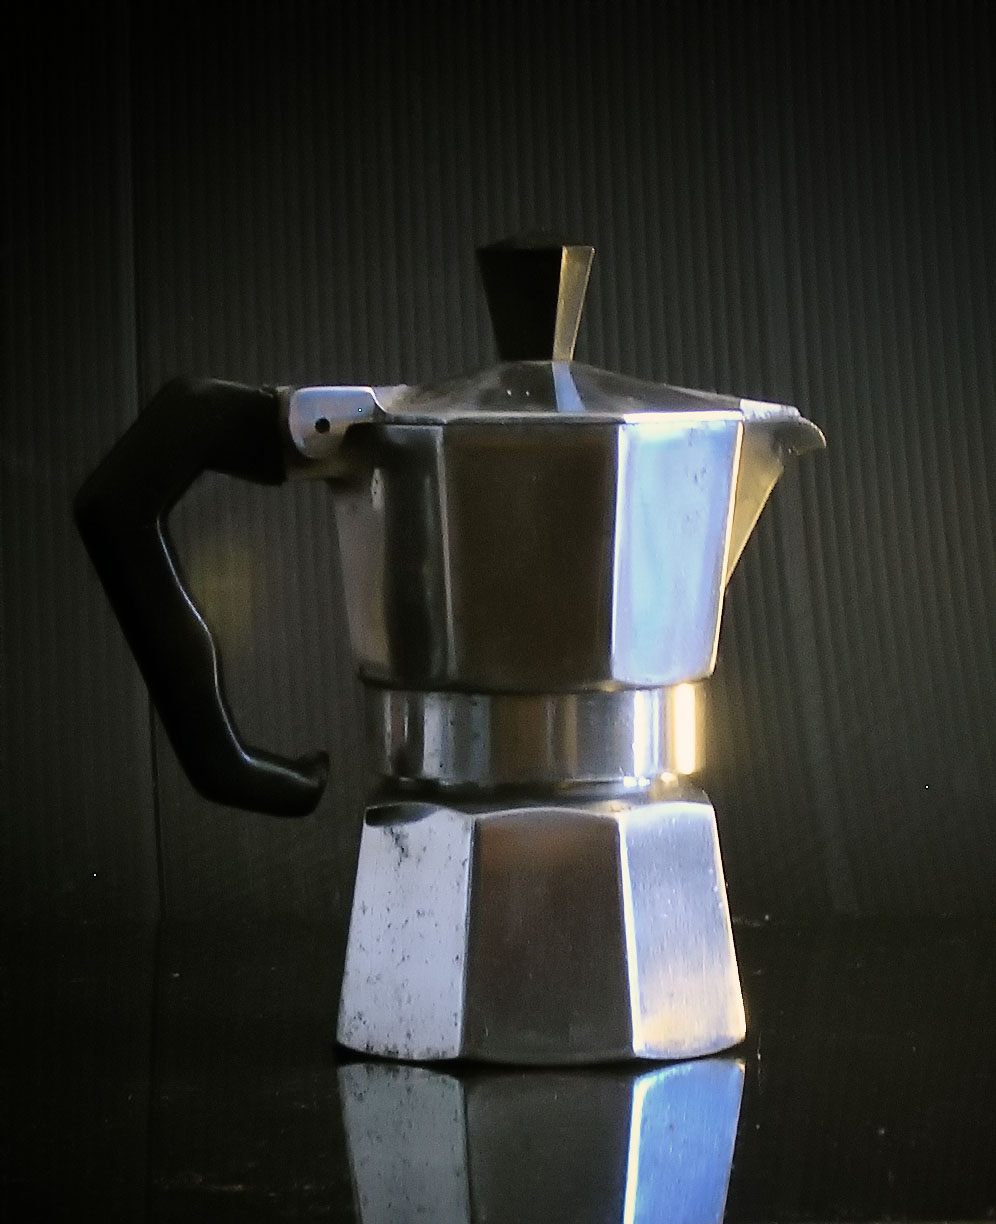 Bialetti moka express renovation